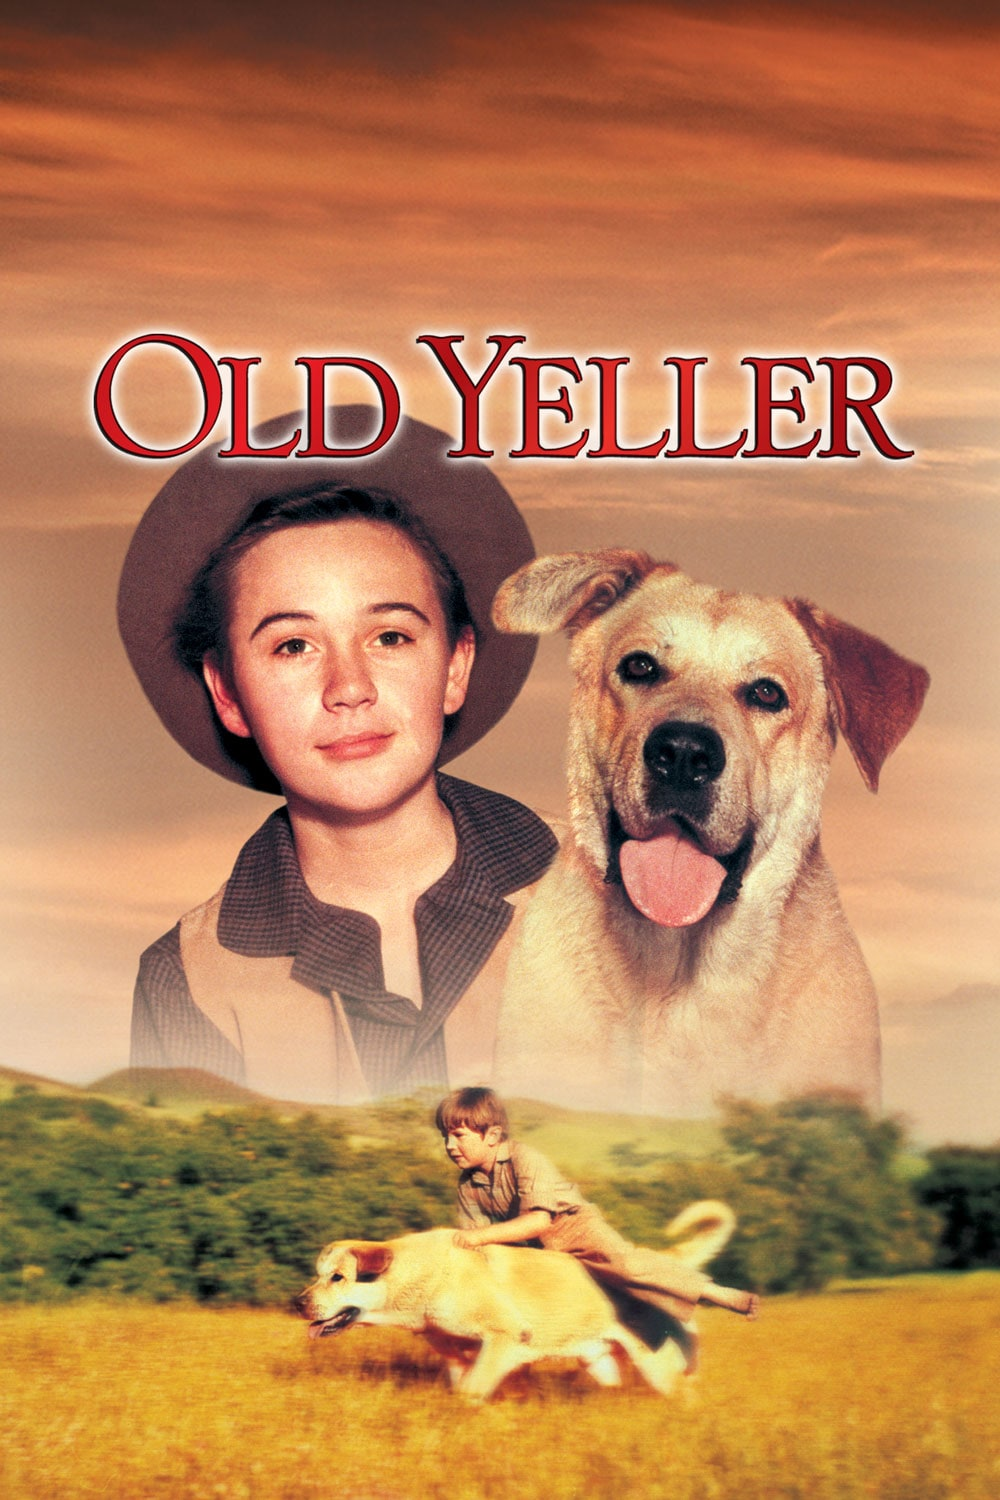 What is the theme of old yeller